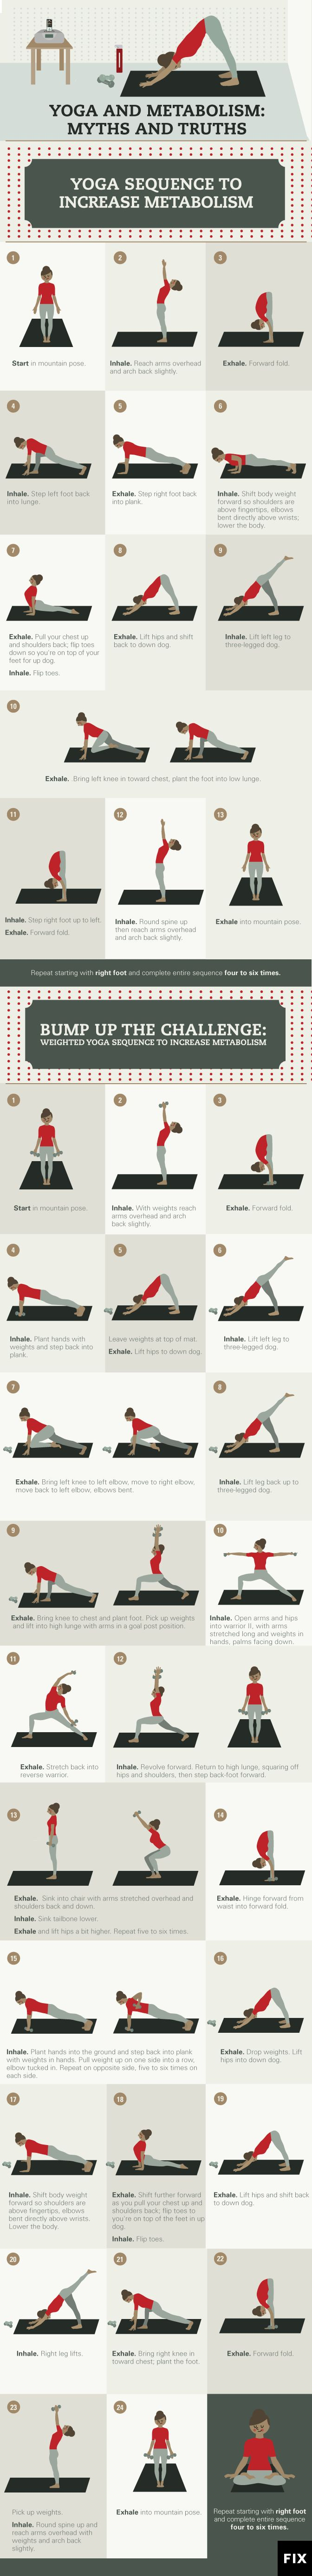 Increase your metabolic rate with these yoga poses! A morning yoga session will ...